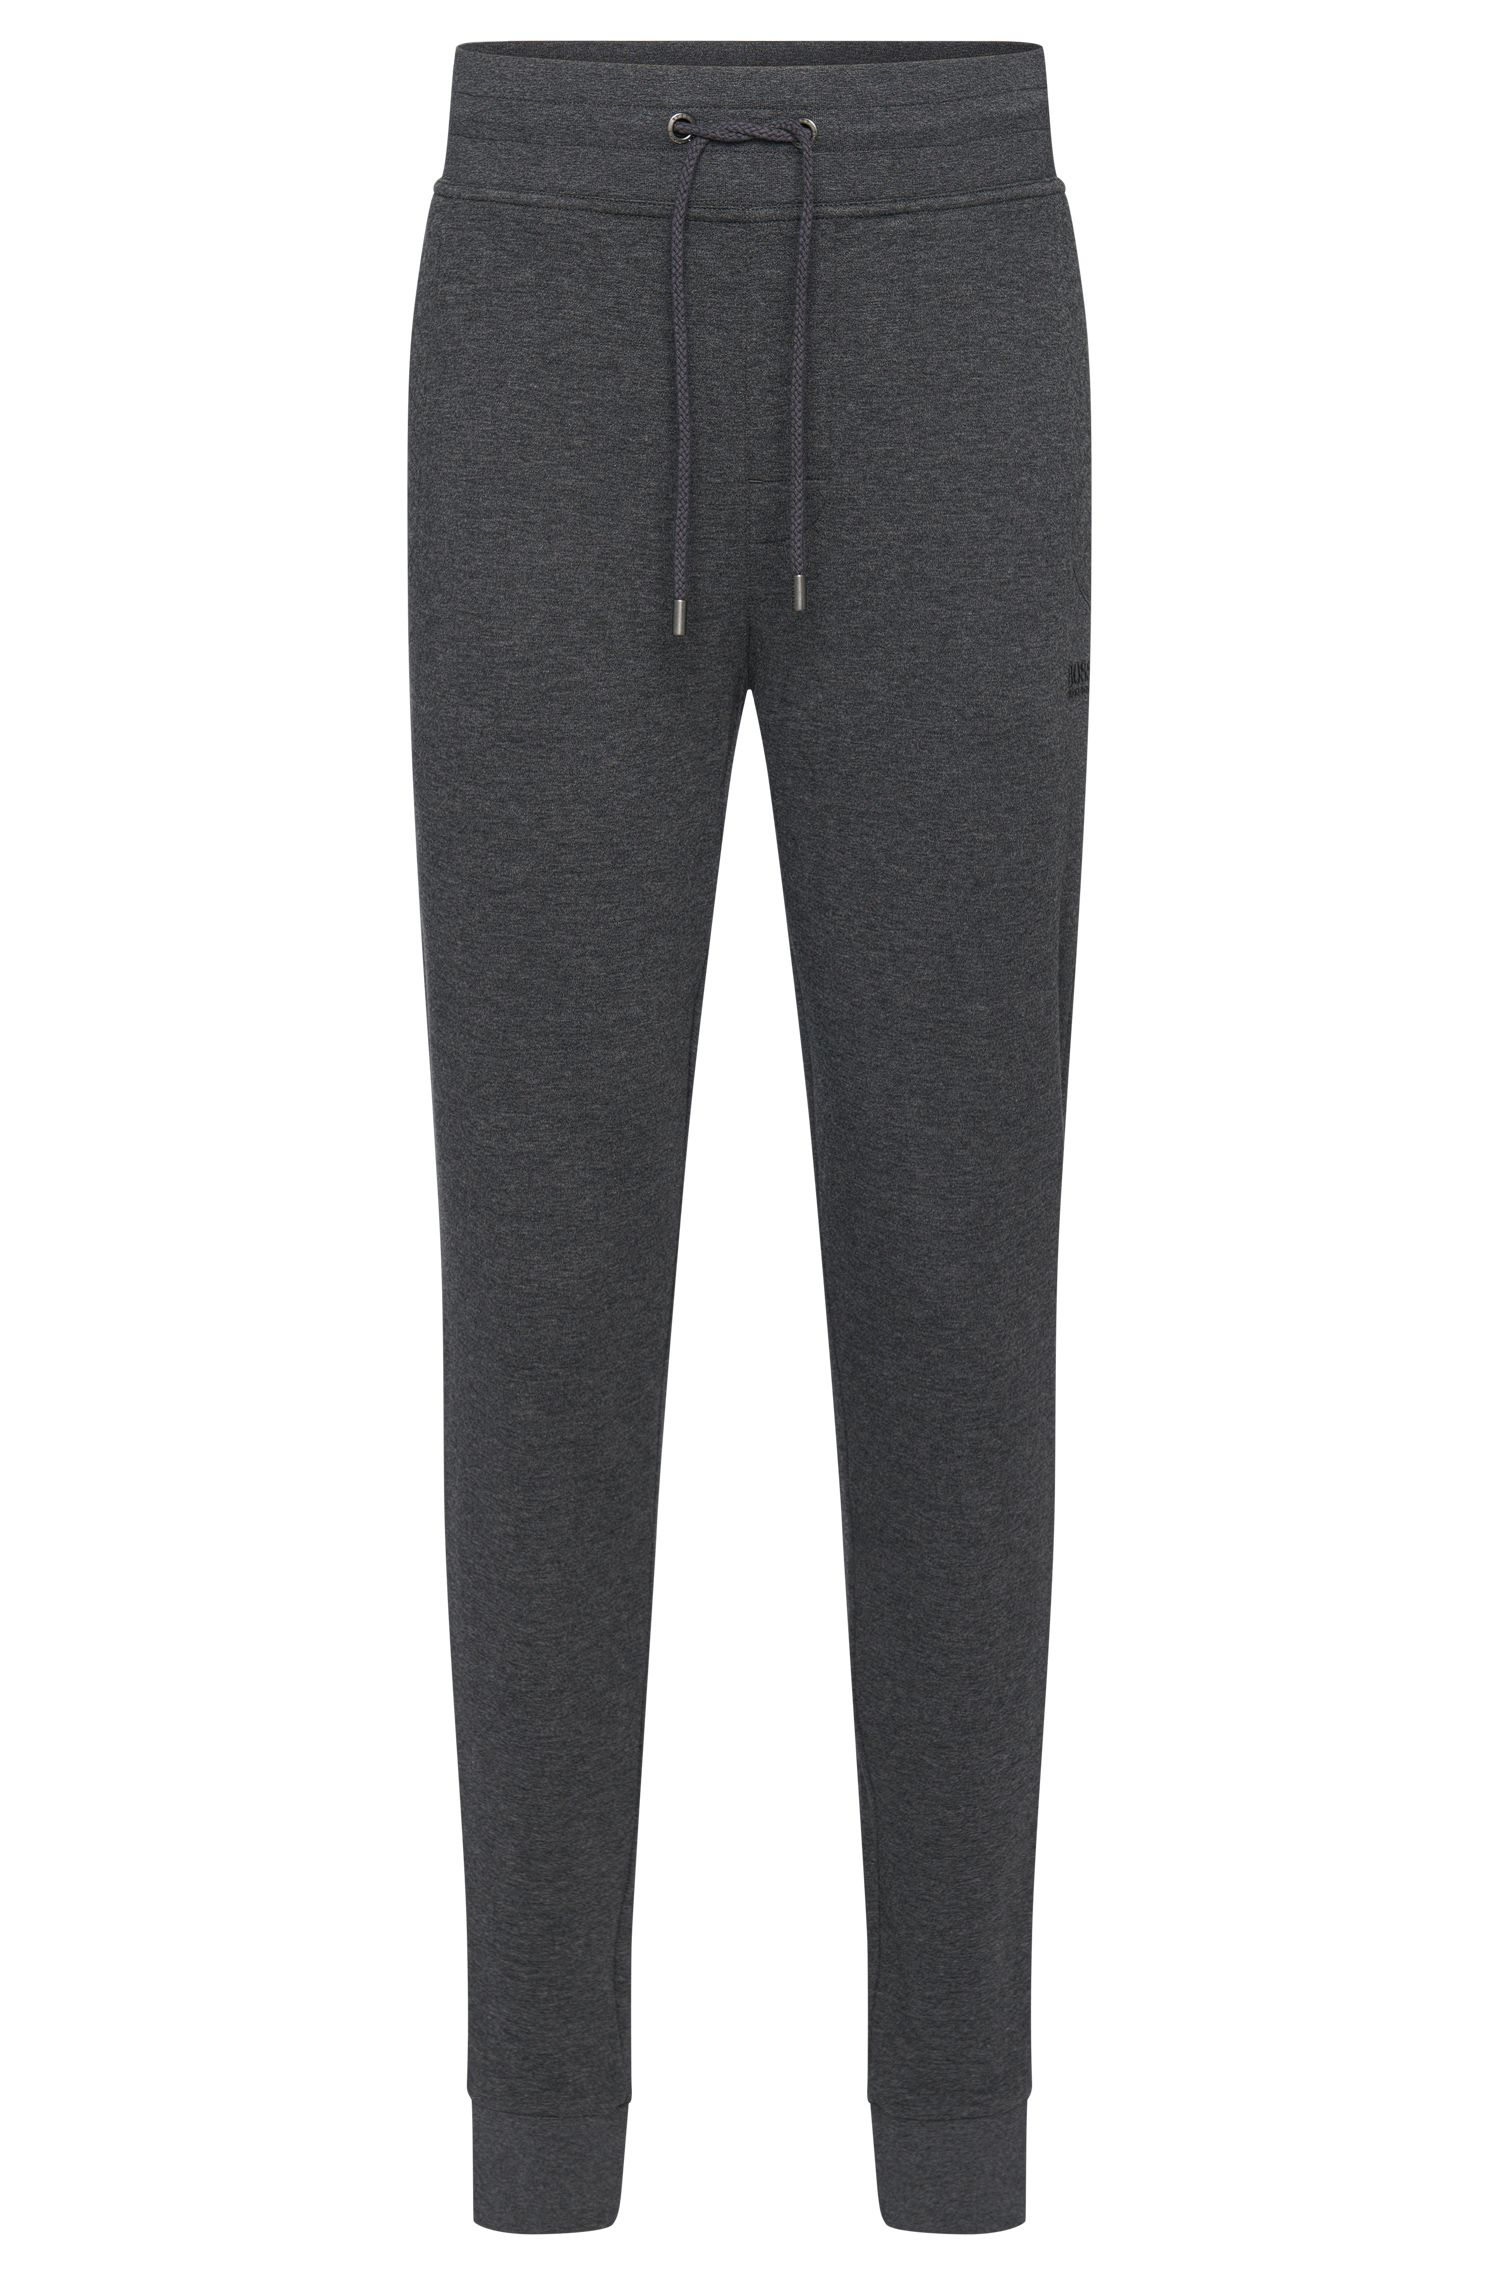 'Long Pant Cuffs' | Cotton Drawstring Sweat Pants